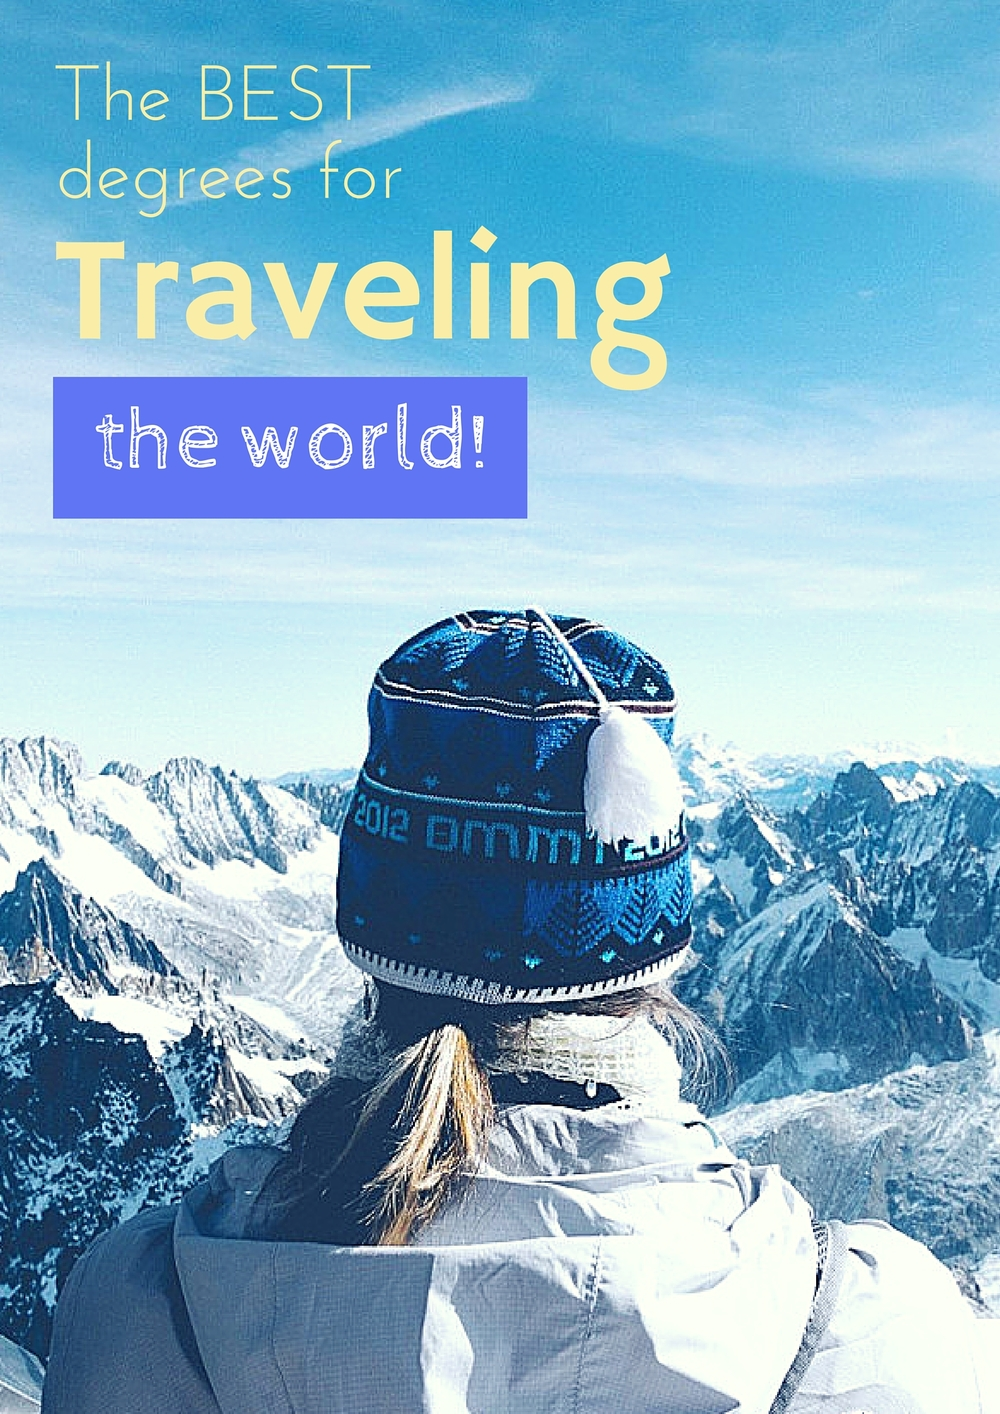 These are the degree's that will enable you to most easily travel the world!